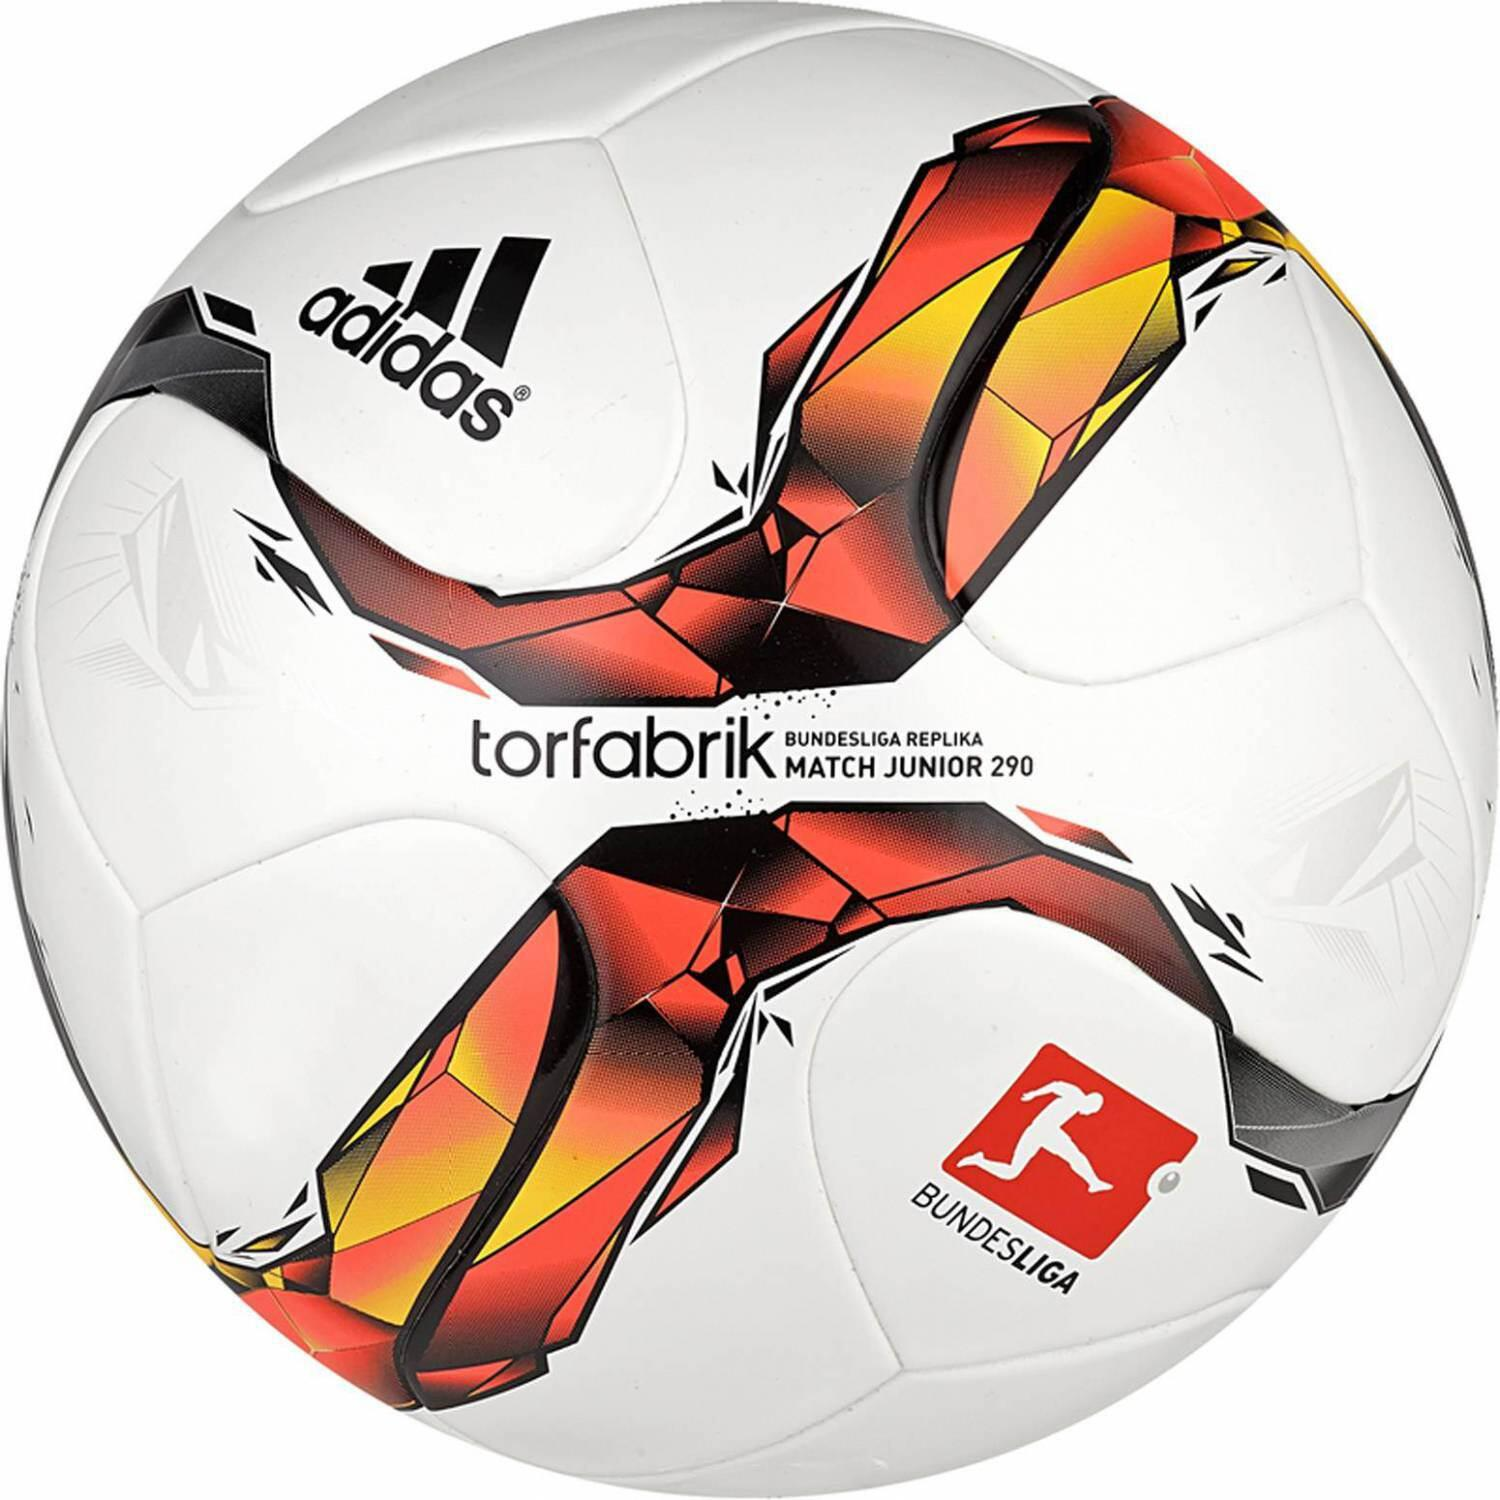 adidas-torfabrik-2015-junior-290-kinderfu-szlig-ball-gr-ouml-szlig-e-5-white-solar-red-black-sol